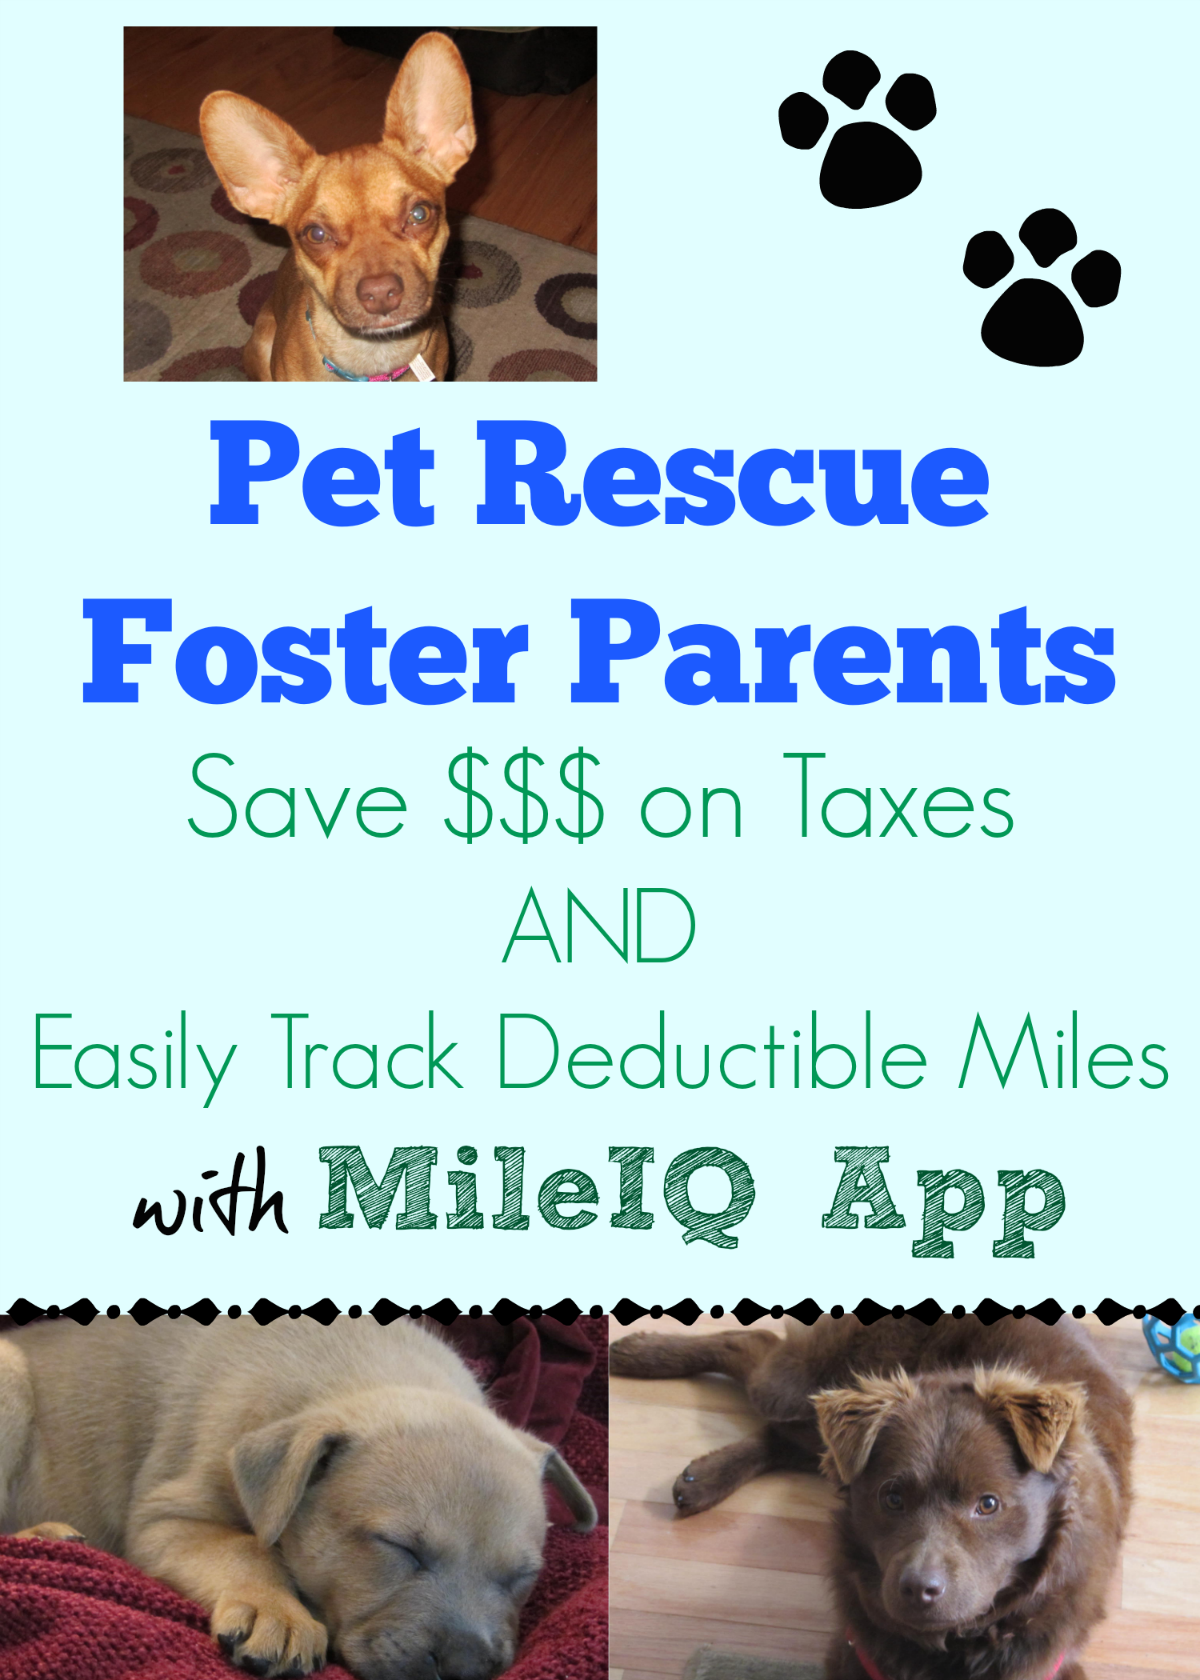 Pet Rescue Foster Parents ~ Save $$$ on Taxes & Track Deductible Miles with MileIQ App